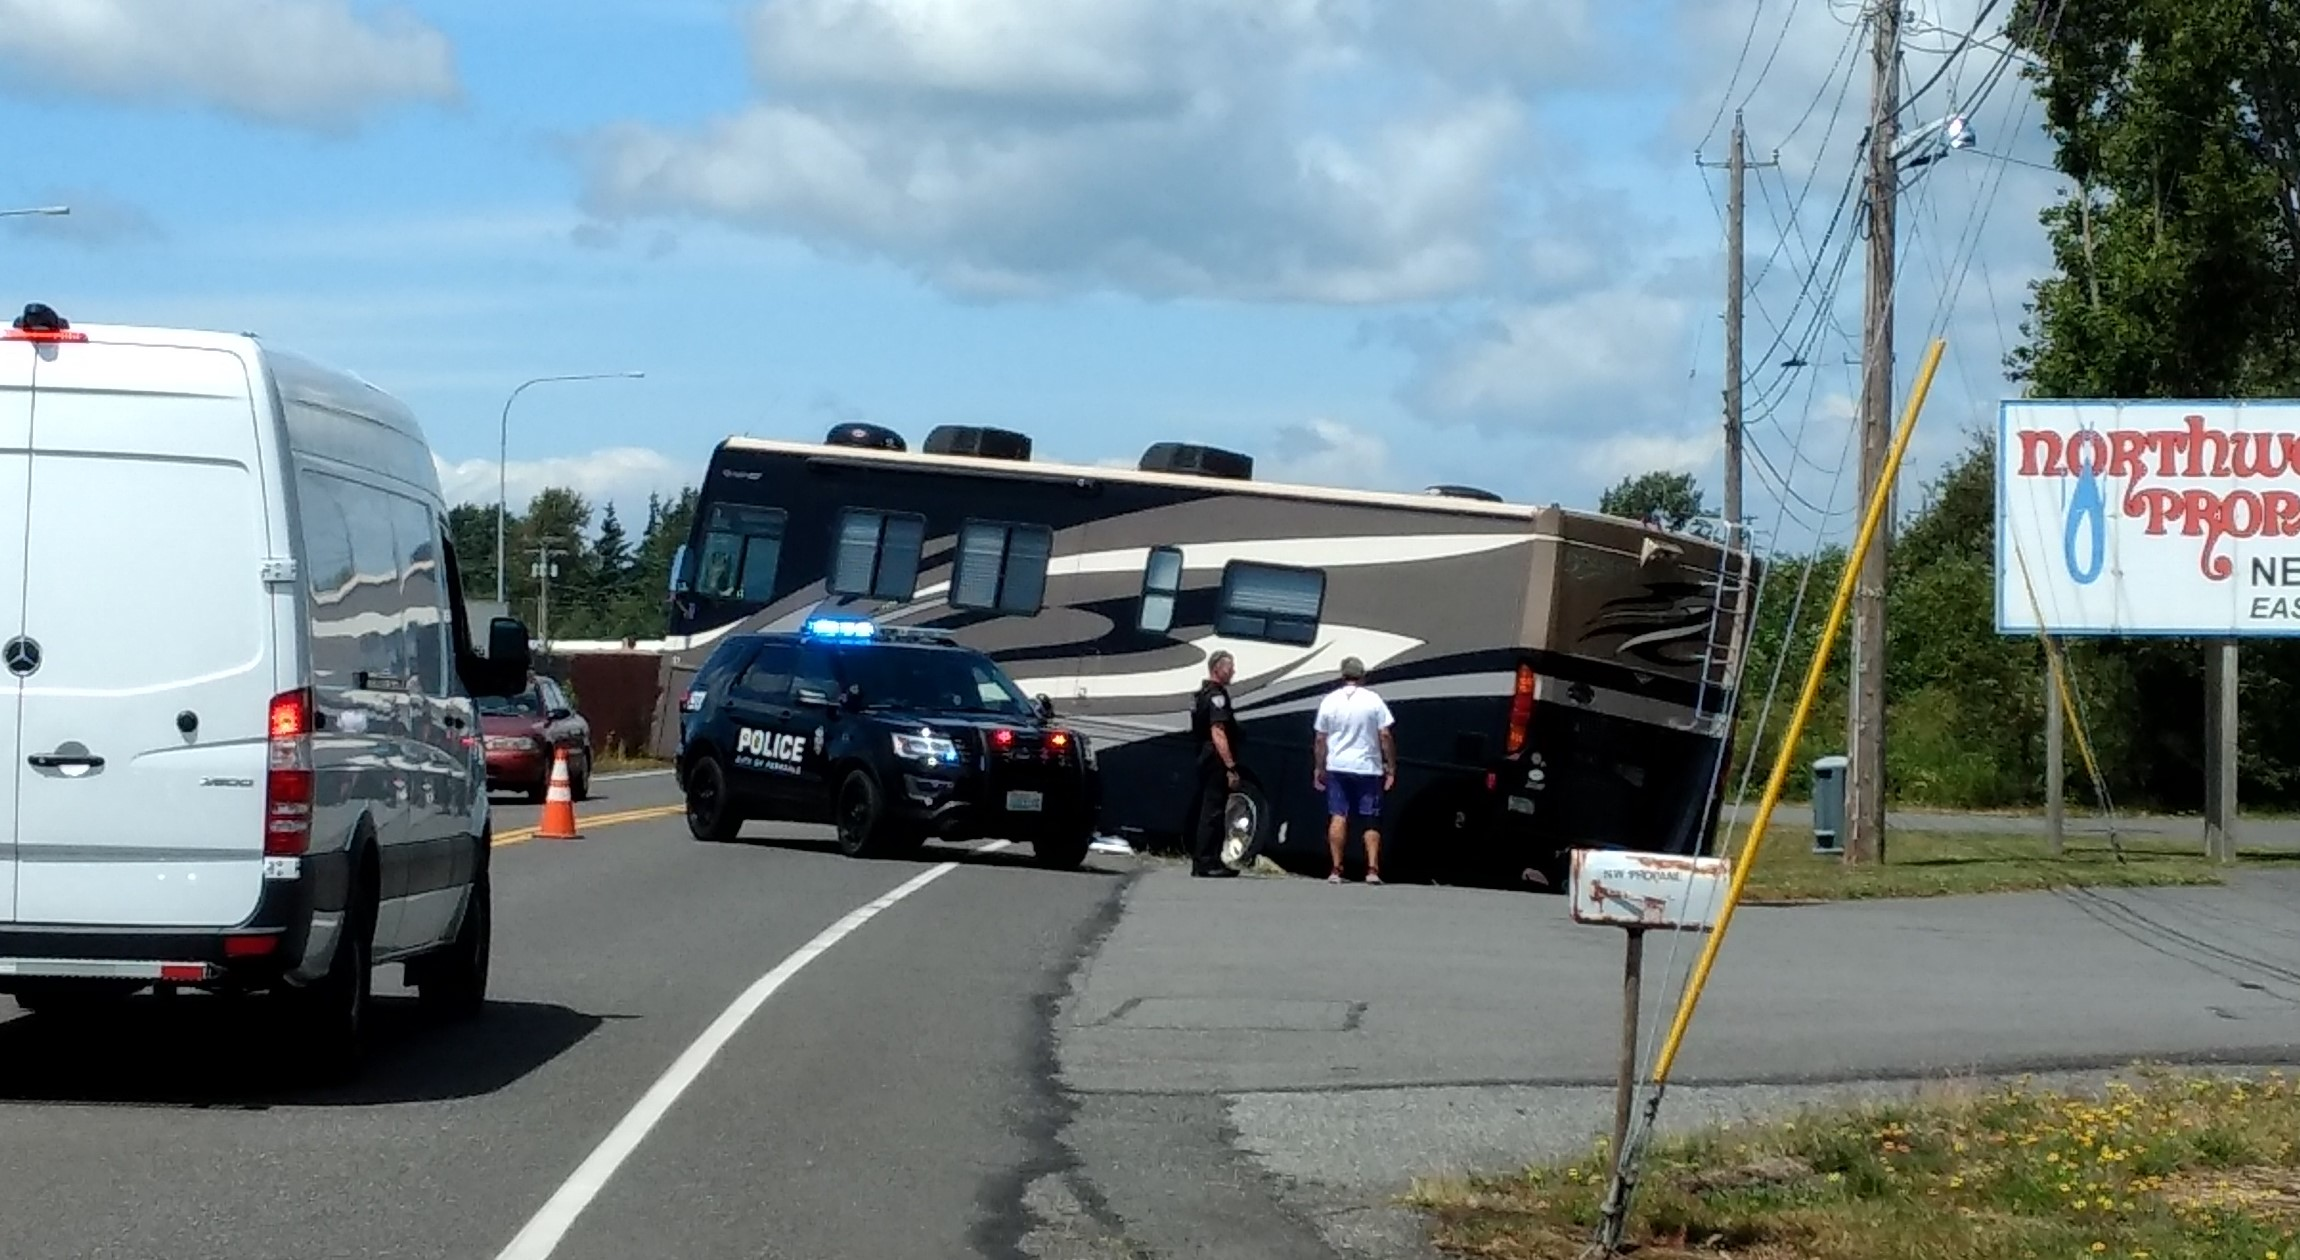 Motorhome blocking a lane on Barrett Road after becoming high-centered (June 20, 2019). Photo: My Ferndale News